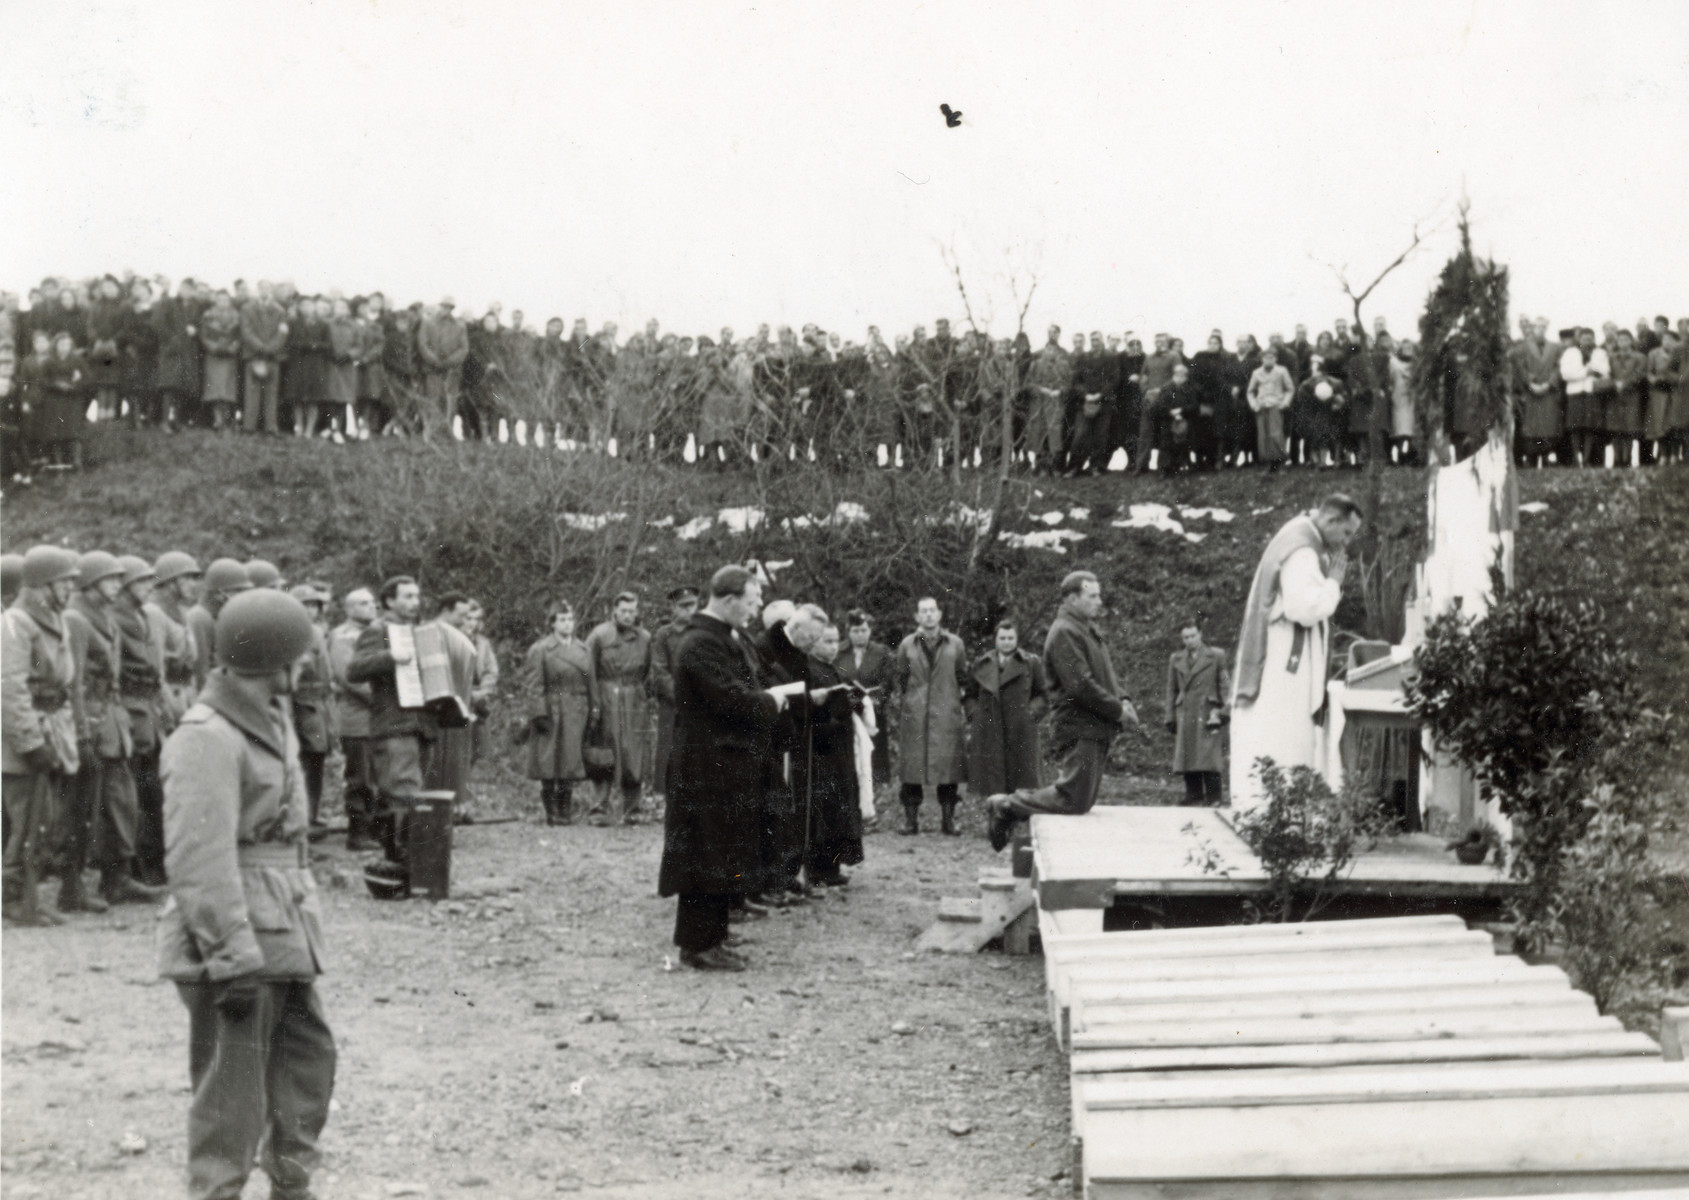 Early dedication of future monument to the victims of the Pocking concentration camp.